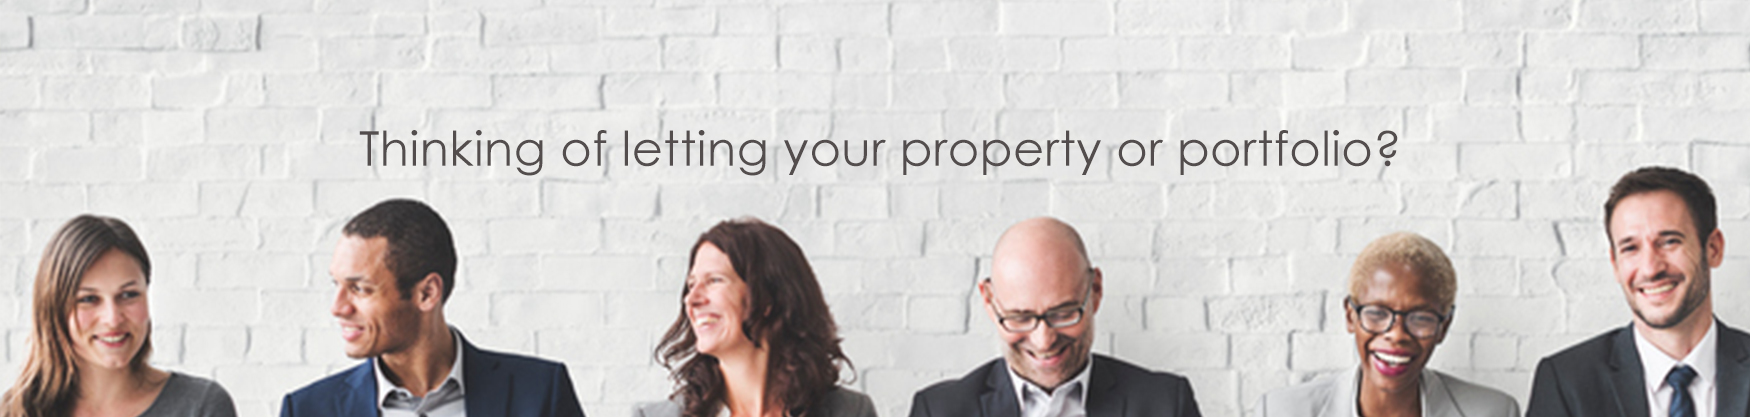 Letting properties UK - Landlords, lettings agents farnborough